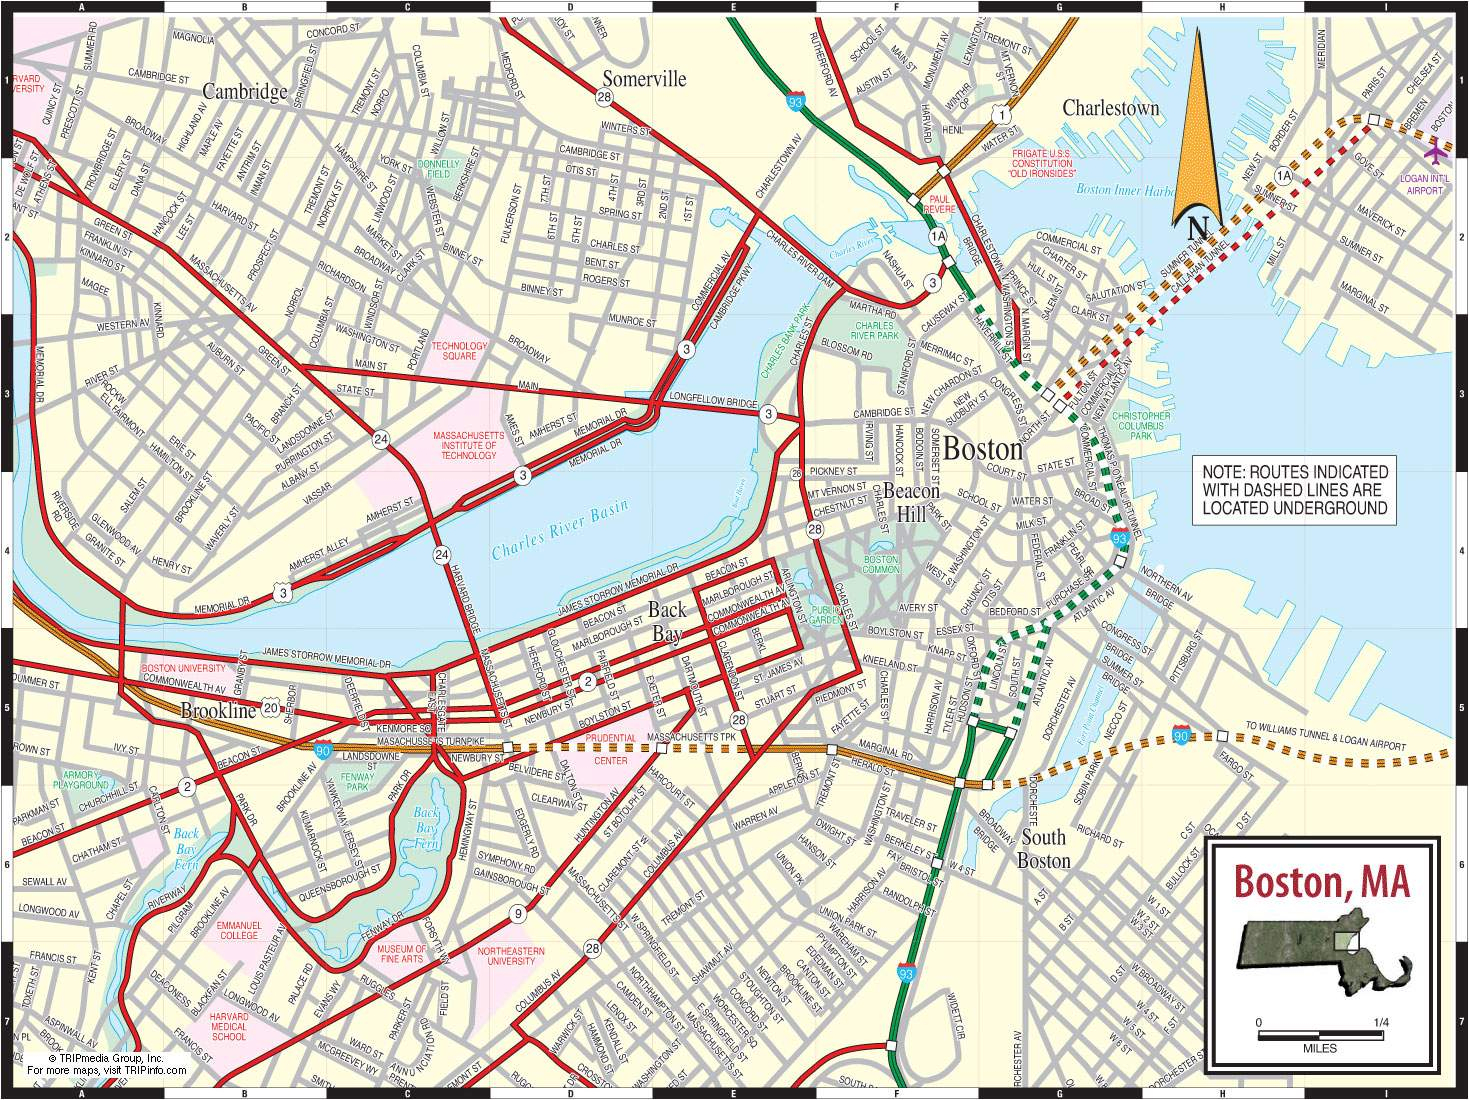 Large Boston Maps For Free Download And Print | High-Resolution And - Printable Map Of Boston